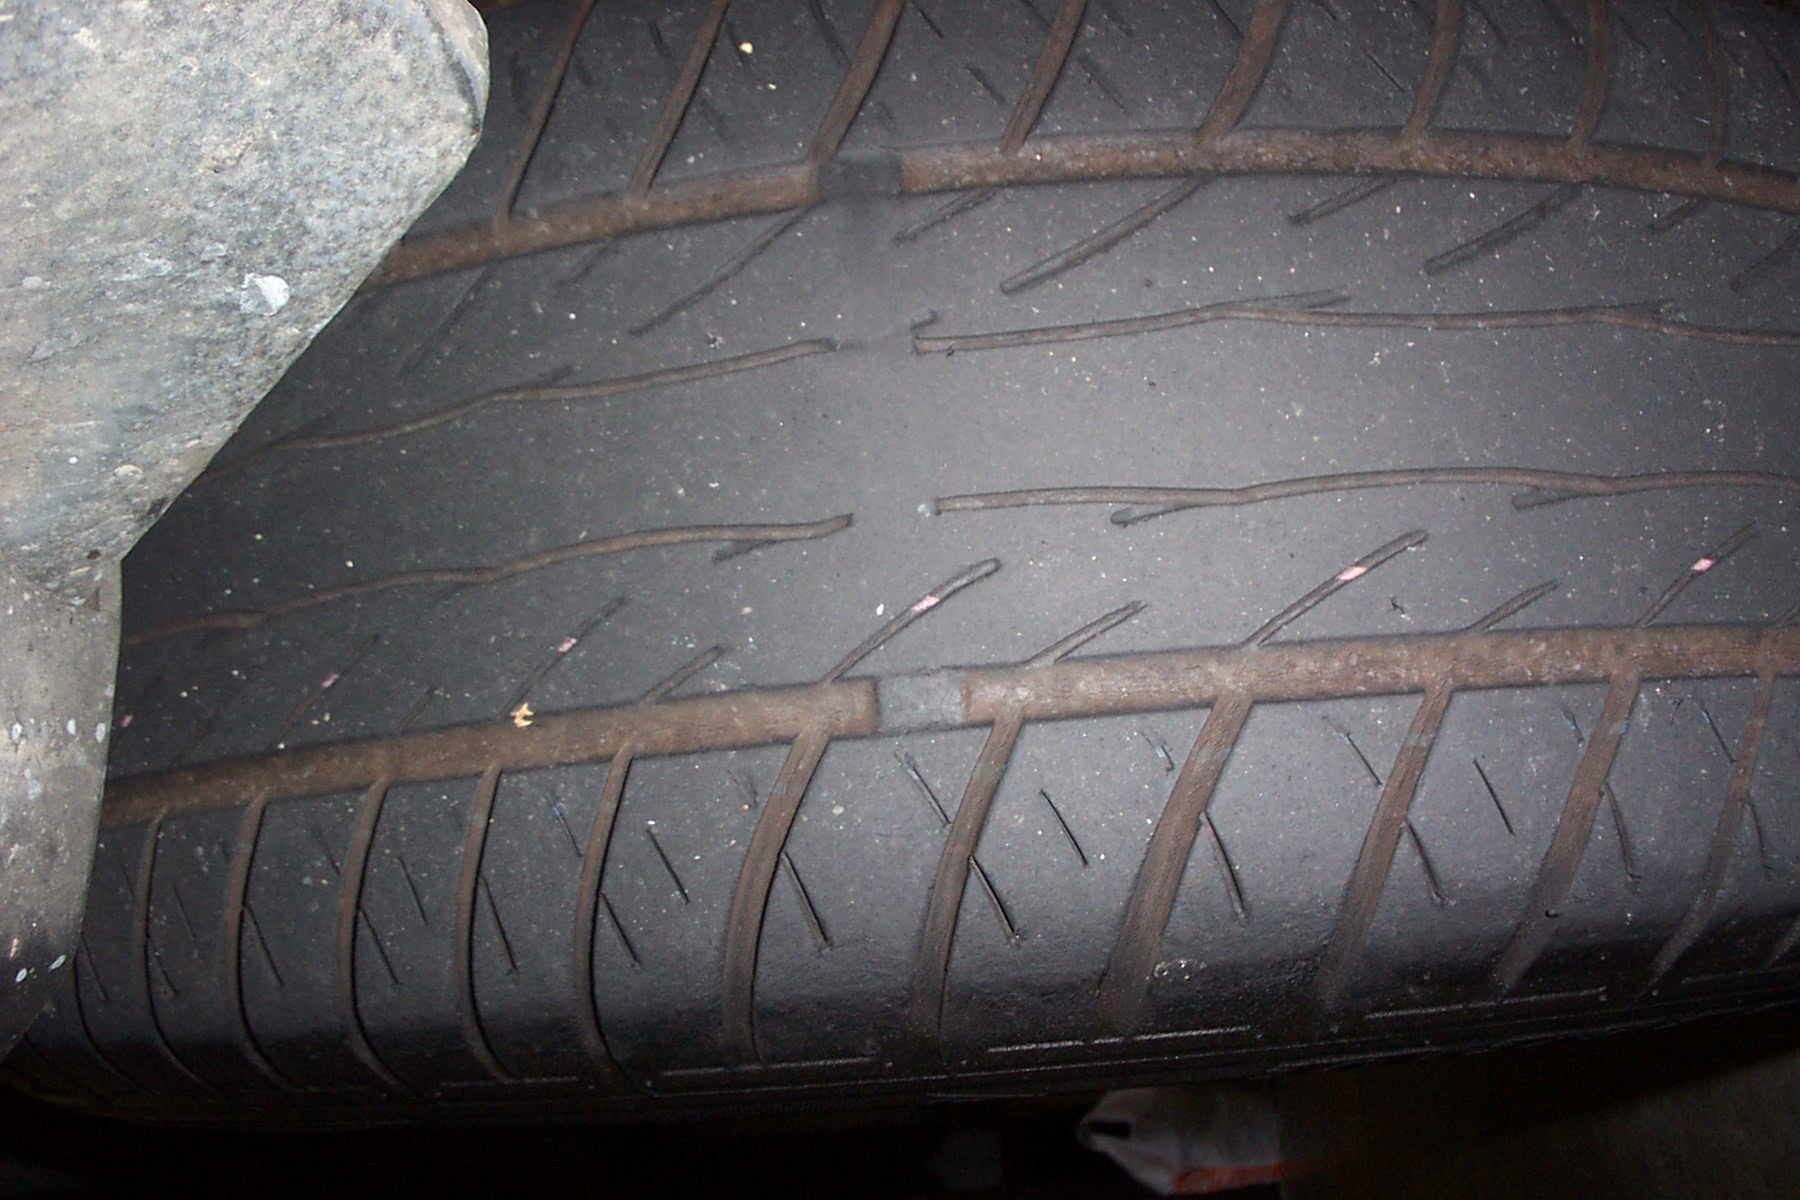 Help 1 Uneven Rear Tire Wear On Inside Only Camber